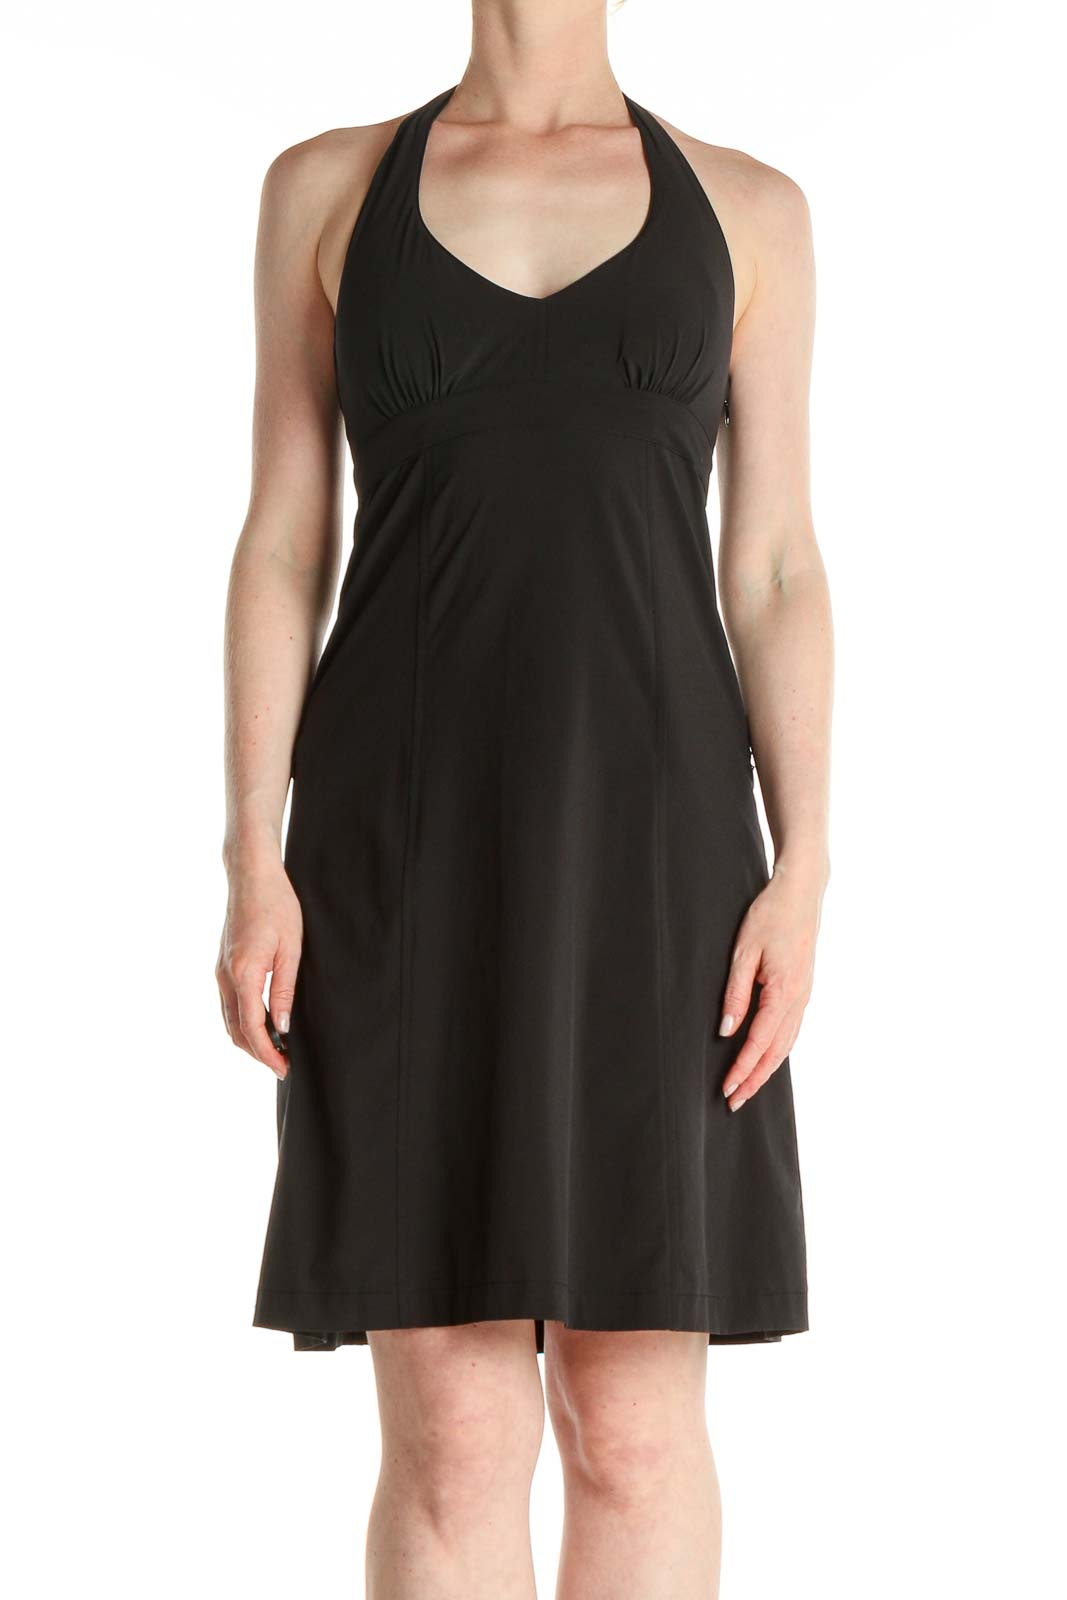 Black Solid Activewear Fit & Flare Dress Front